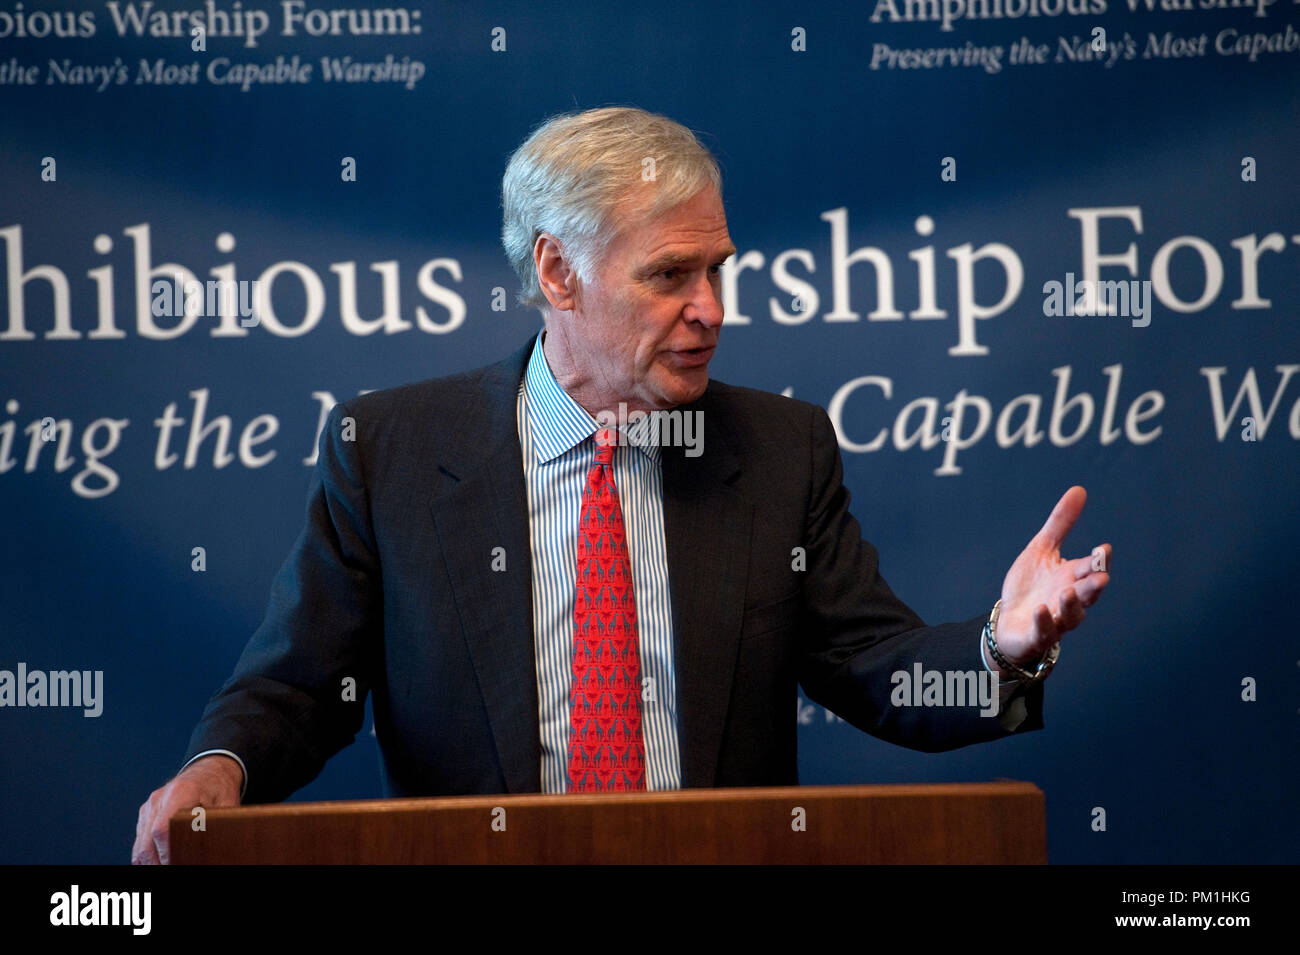 UNITED STATES - Feb 11:  U.S. Representative Ander Crenshaw, R-FLA., from Florida's 4th district during the Amphibious Warship Industrial Base Coaliti - Stock Image